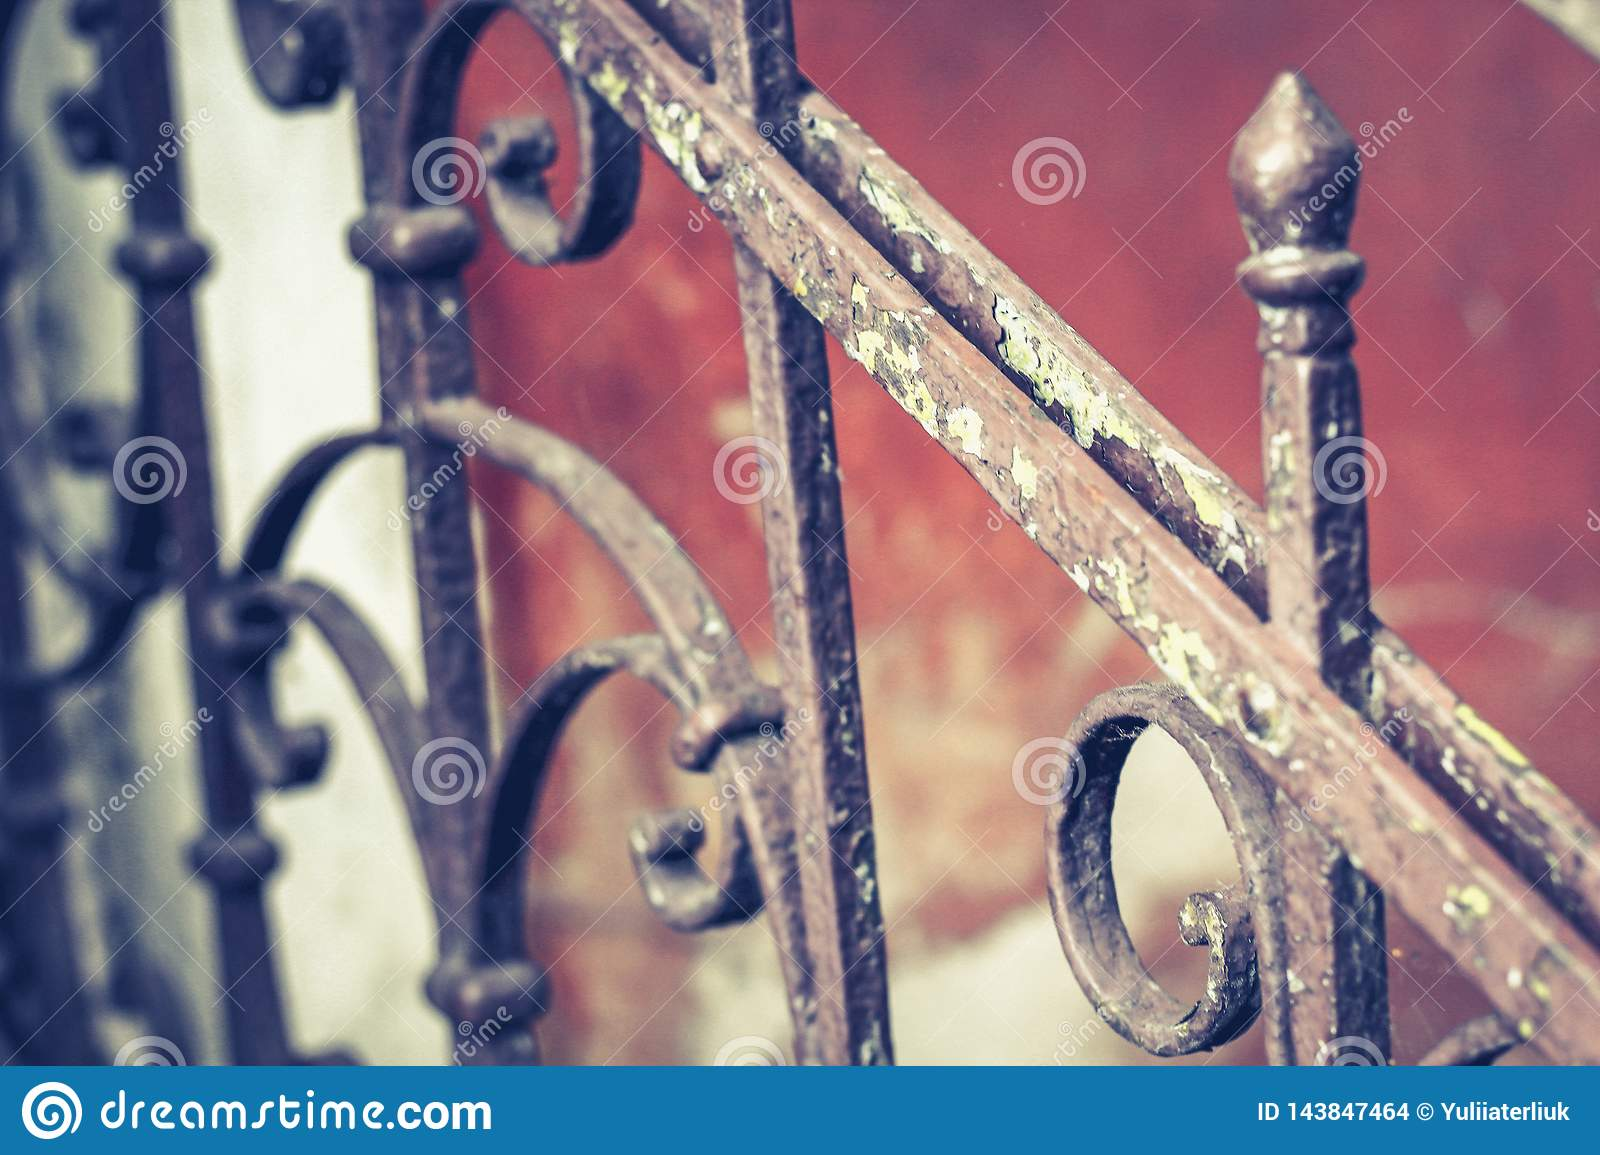 Old vintage railing with rust on the stairs in the house. Forged railing steps in the house